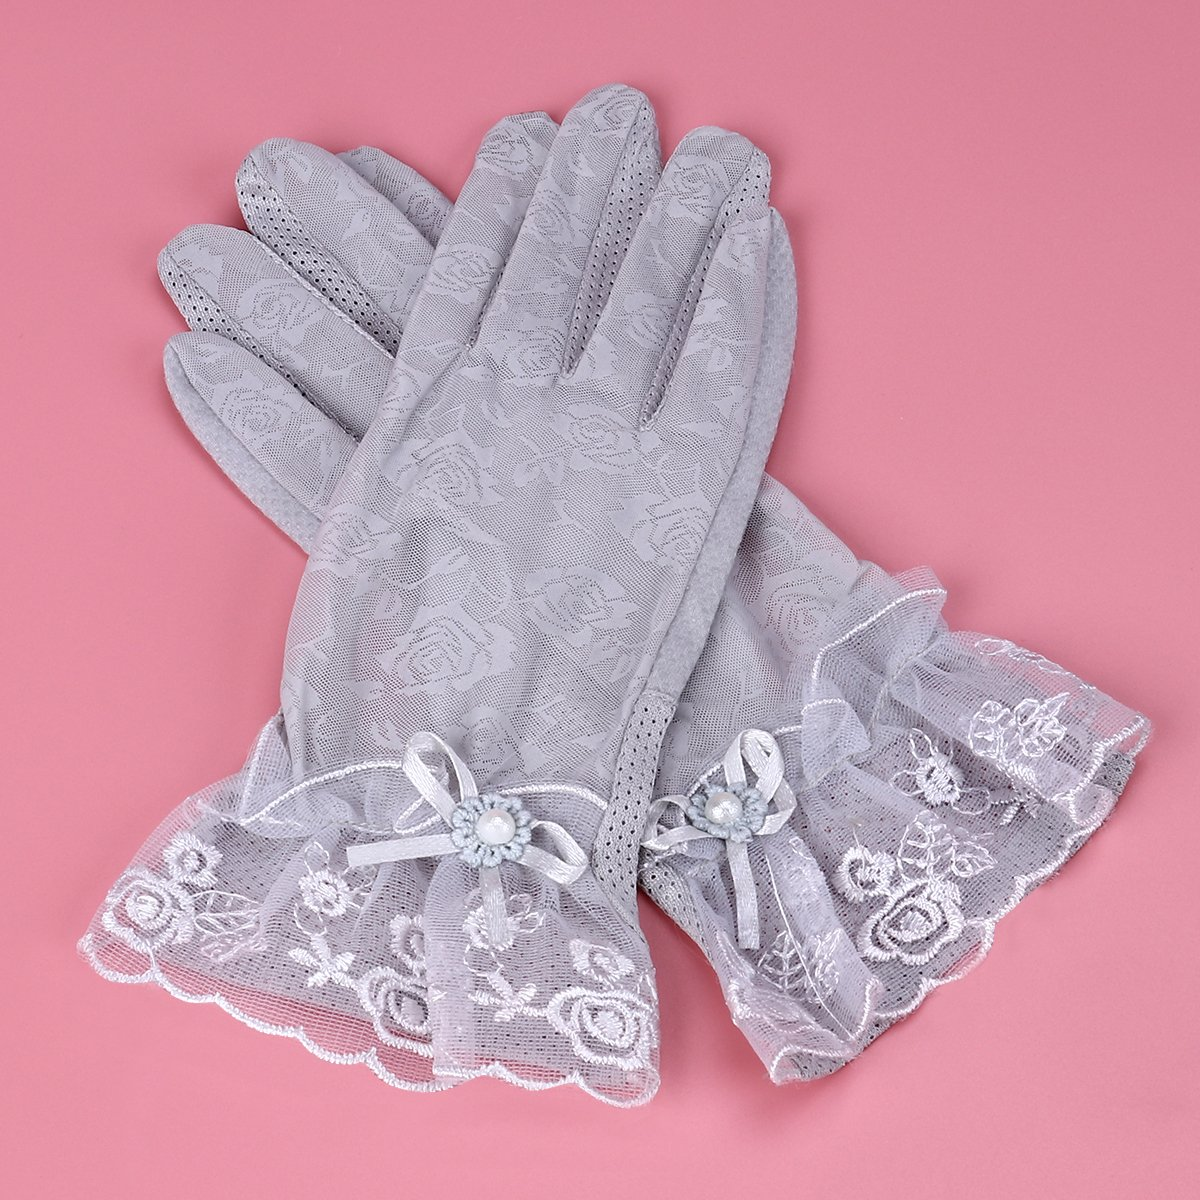 Light Grey Tinksky Women Summer Gloves UV Protective Anti Skid Gloves Short Light for Driving Gardening Outdoor Activities gift for women